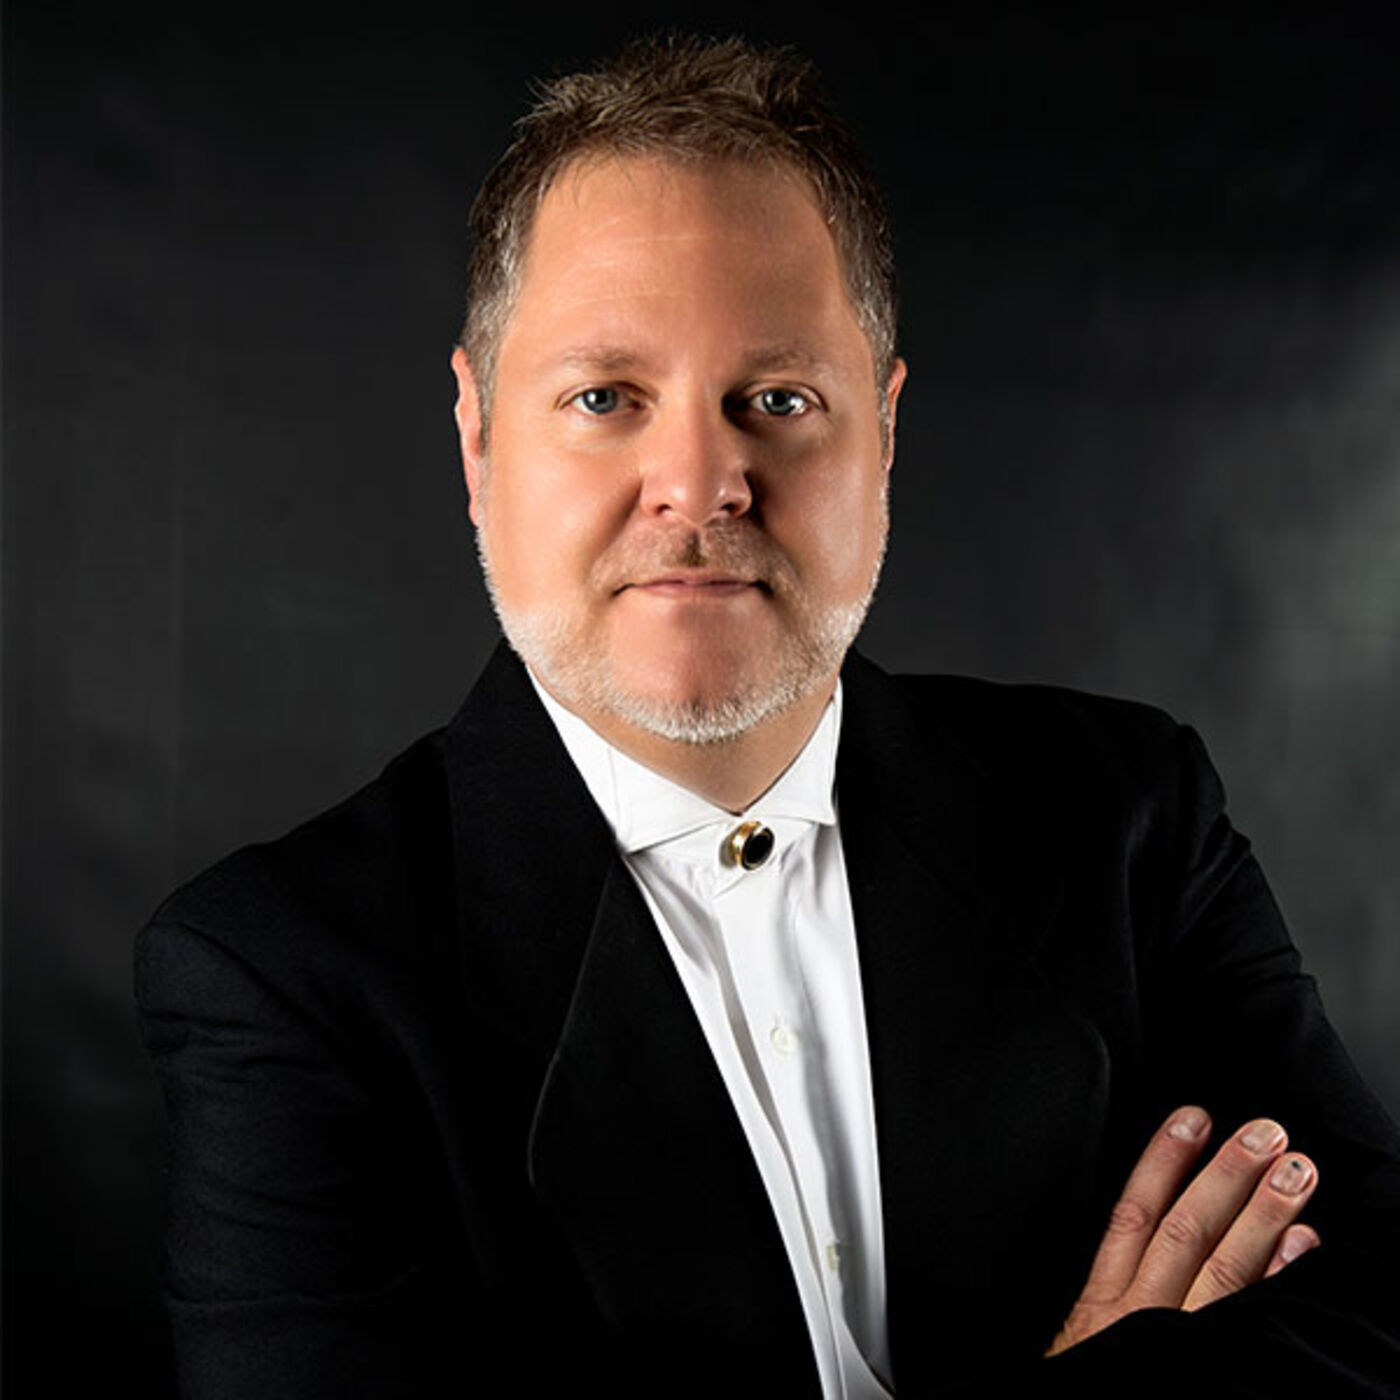 Joseph Caulkins, Conductor and Artistic Director of Key Chorale, Joins the Club